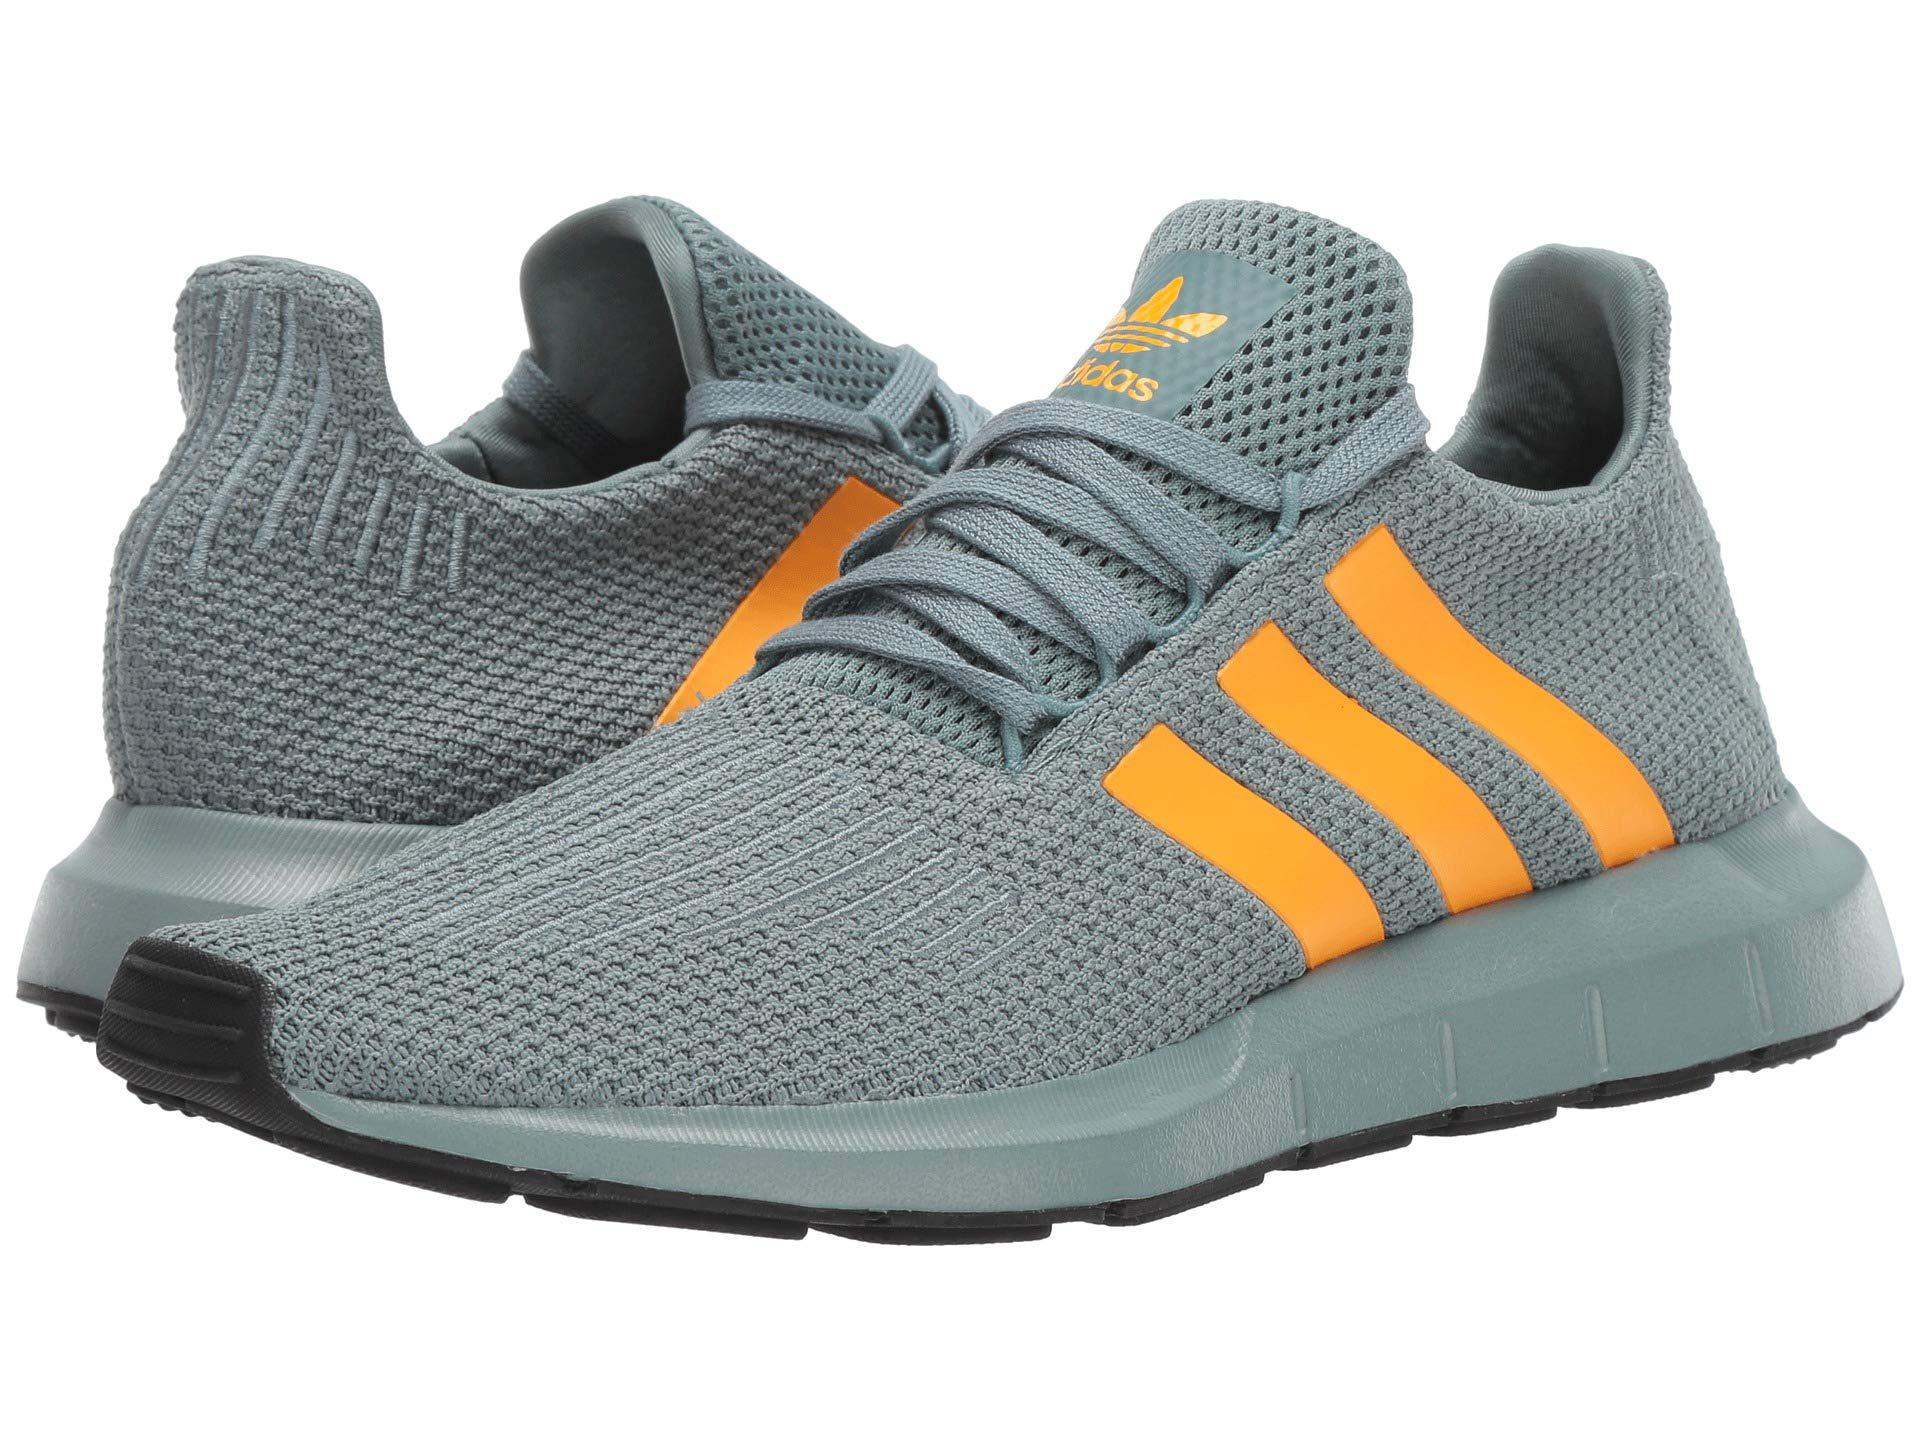 a2954802efb Lyst - adidas Originals Swift Run (raw Green real Gold core Black ...